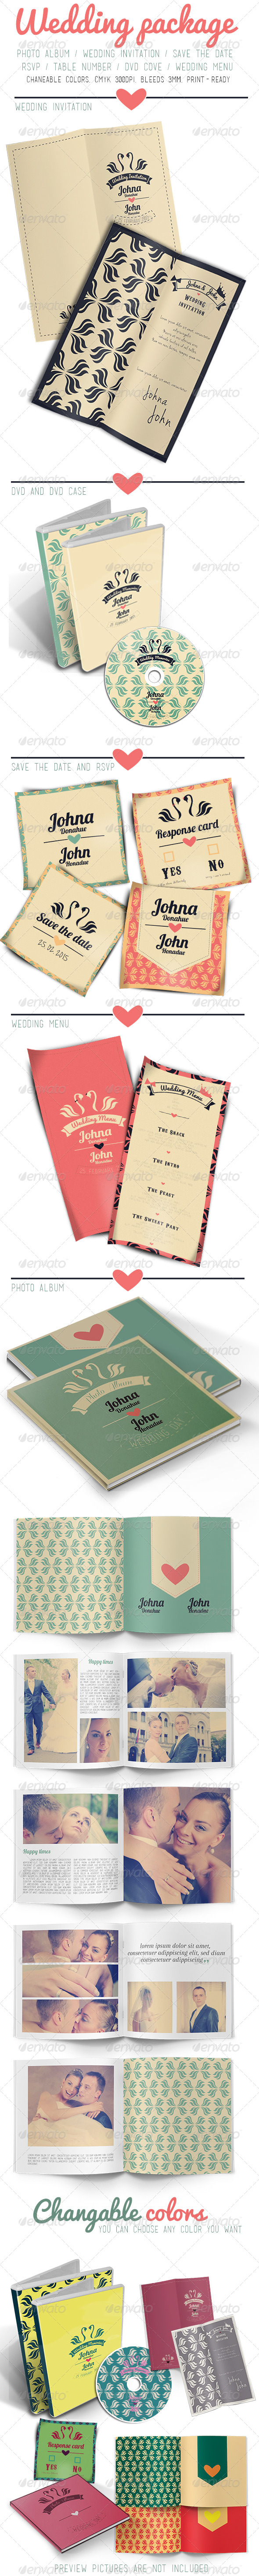 GraphicRiver Wedding Package 5868697